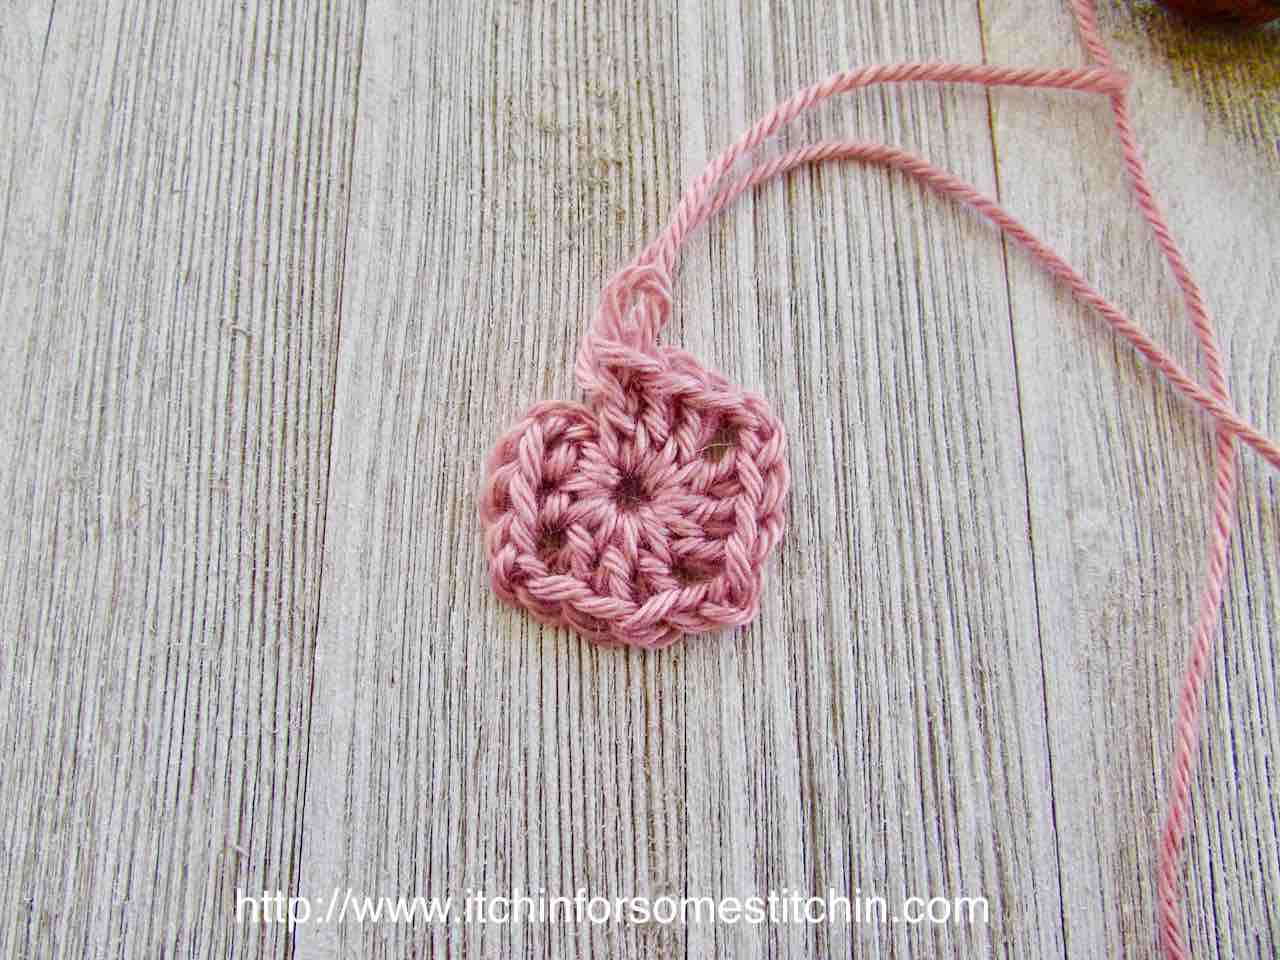 How to Crochet a Granny Square_round one by http://www.itchinforsomestitchin.com